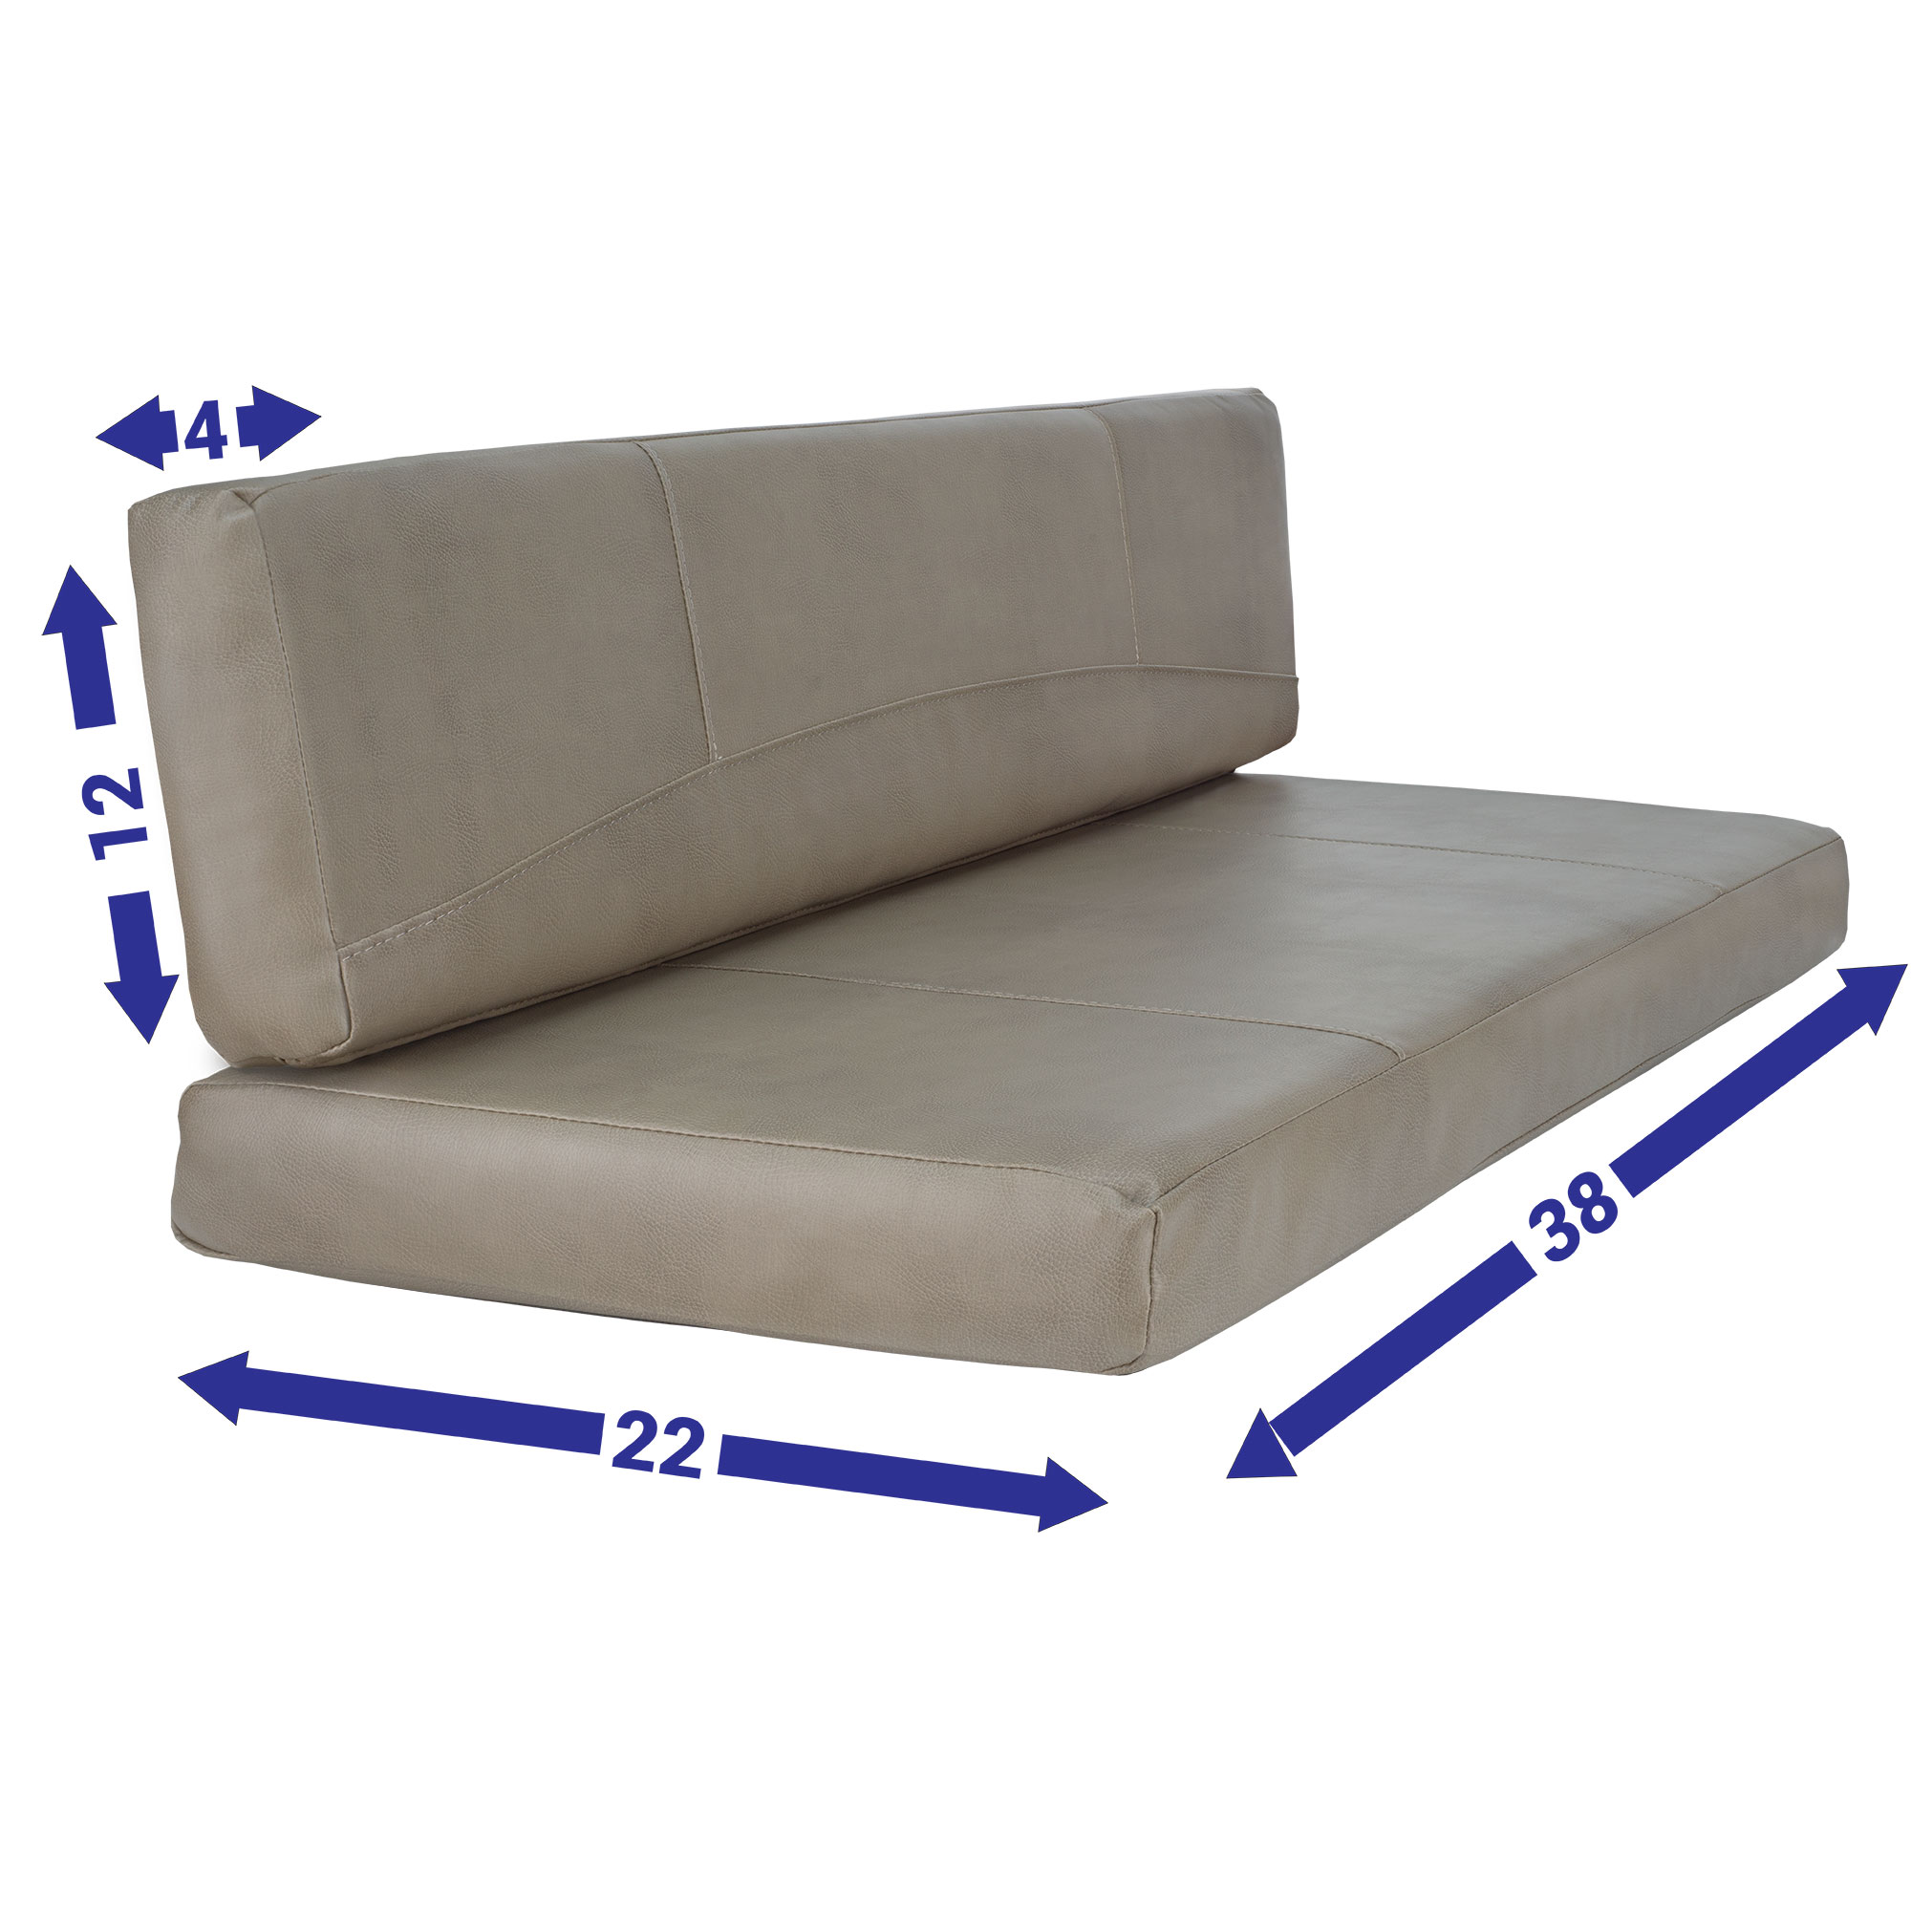 RV Dinette Cushion